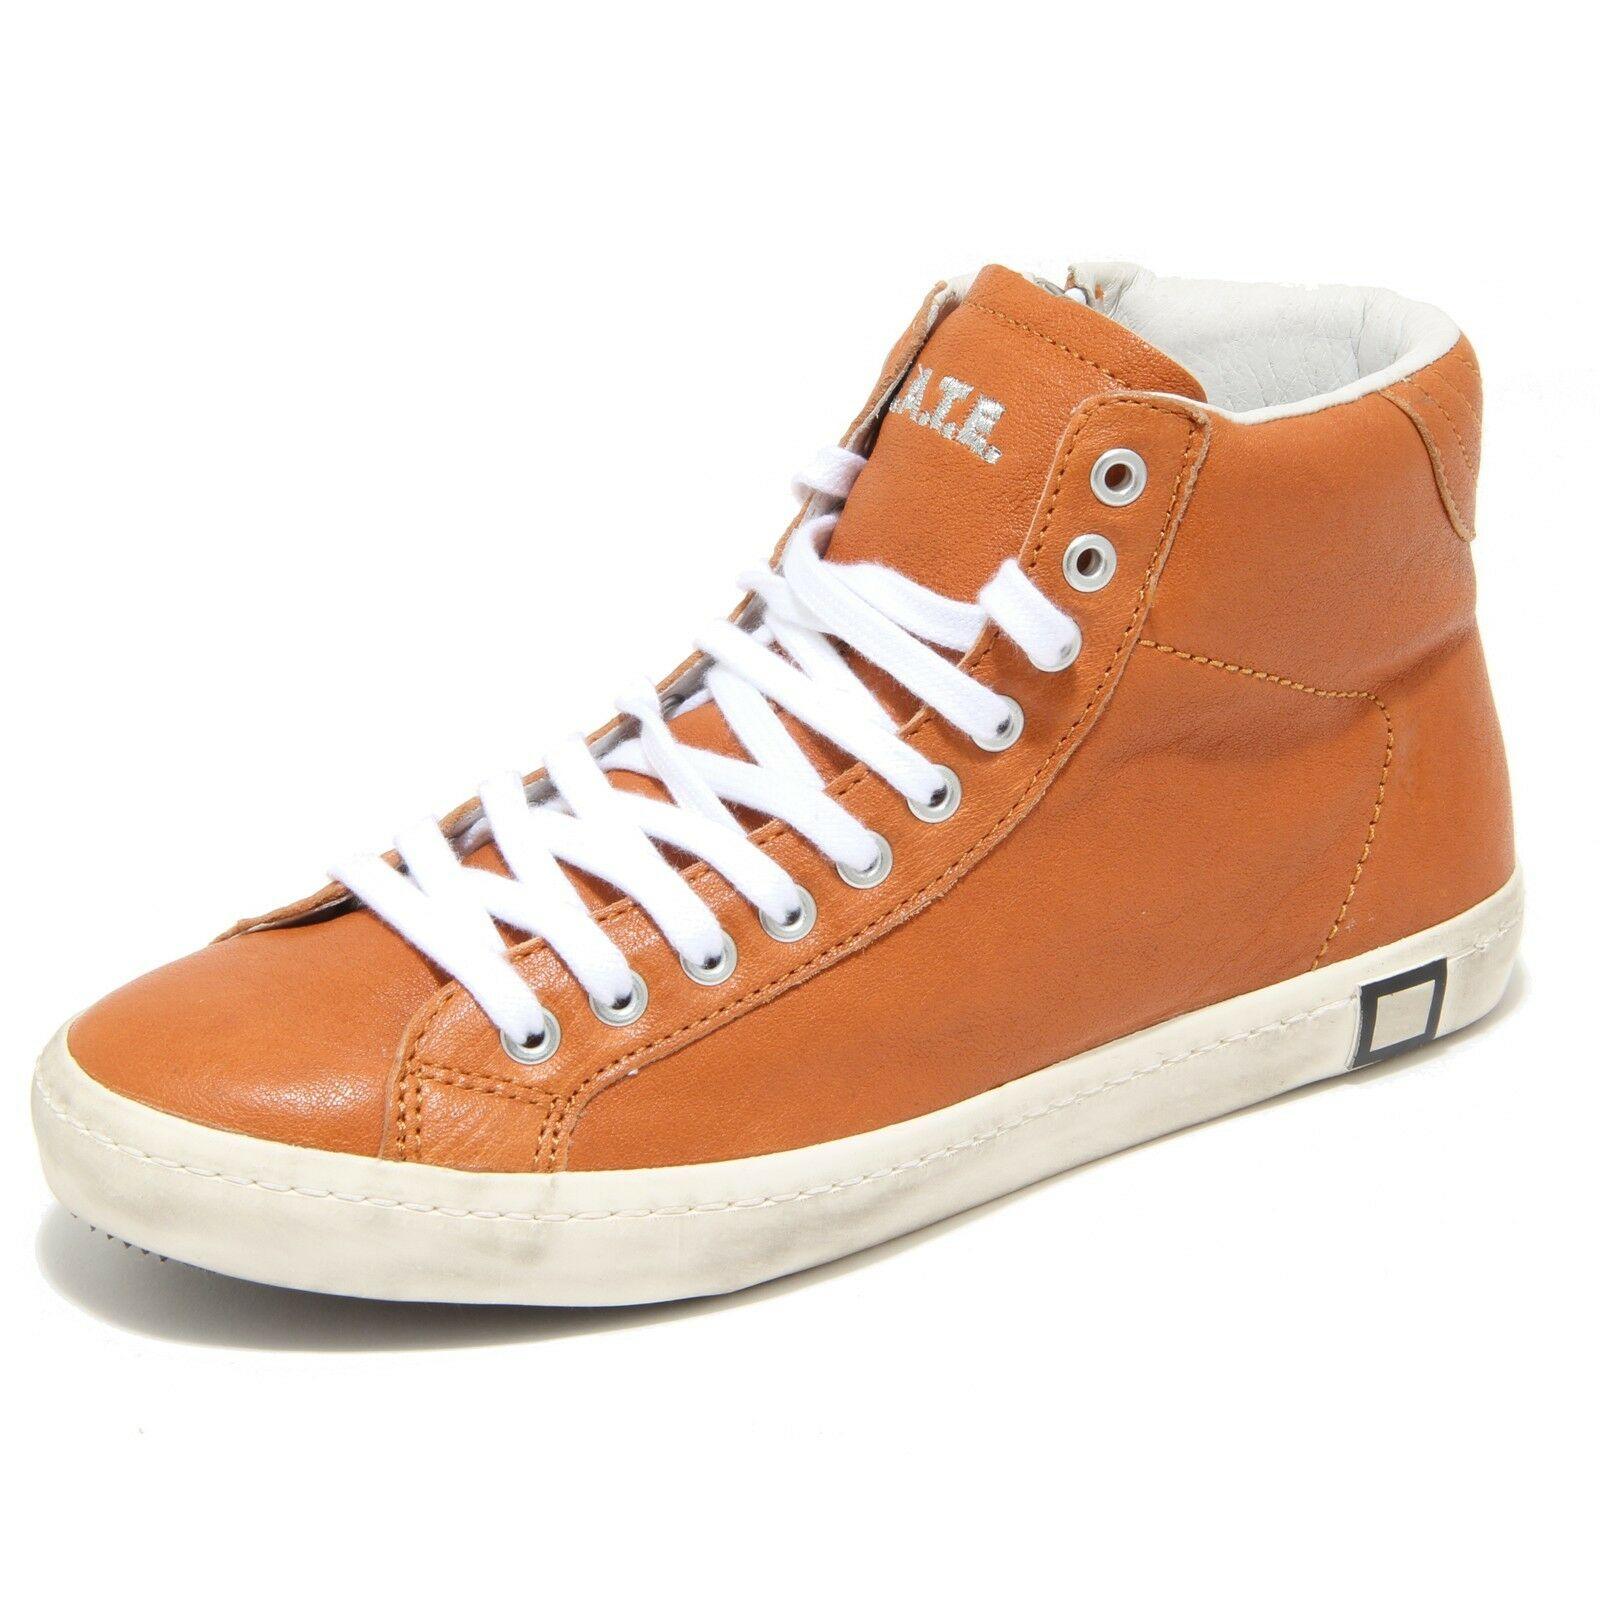 4863I sneakers donna D.A.T.E. hill high galaxy taw scarpe shoes women